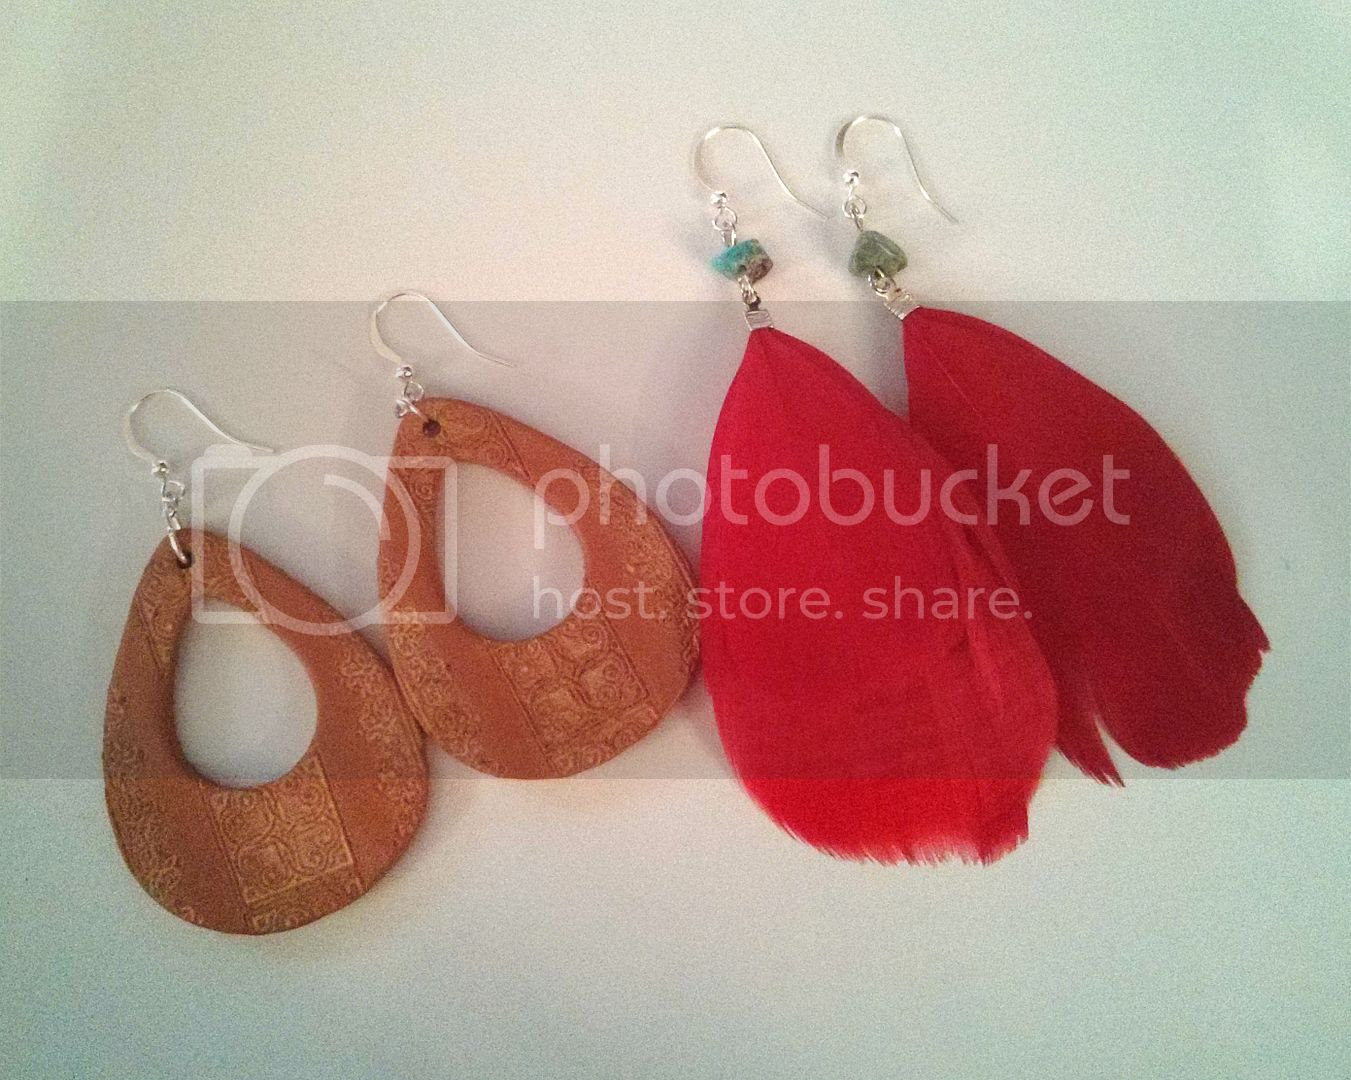 quick feather earrings tutorial